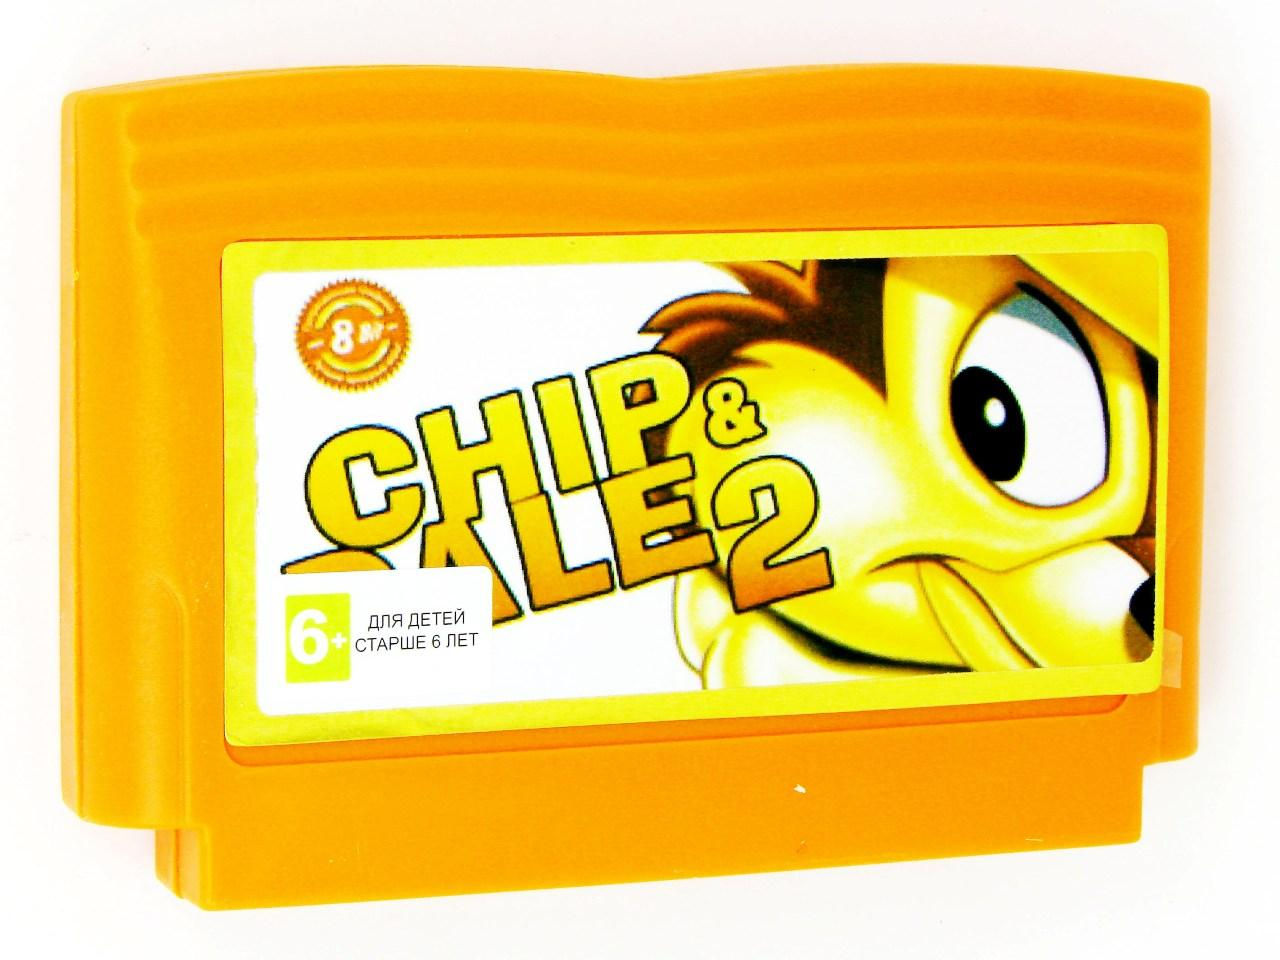 Chip & Dale 2 (Dendy)